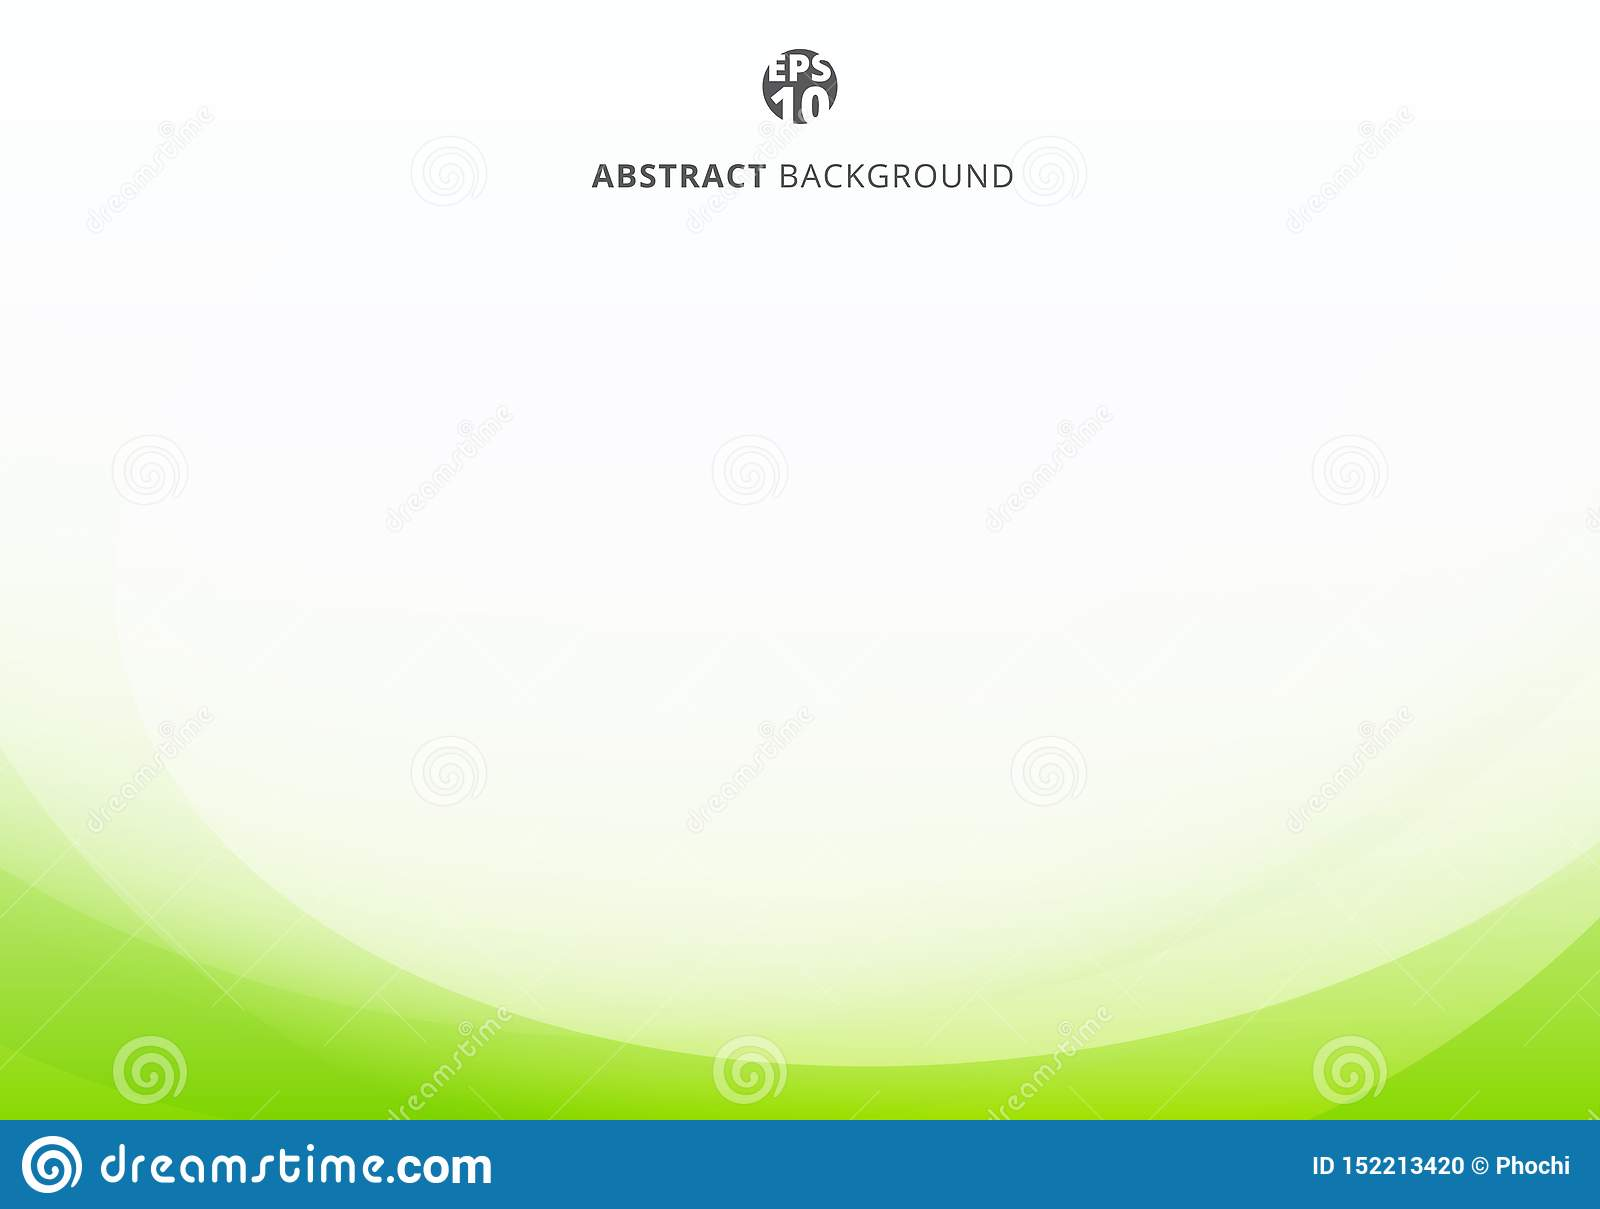 Abstract elegant green lime curve light template on white background with copy space